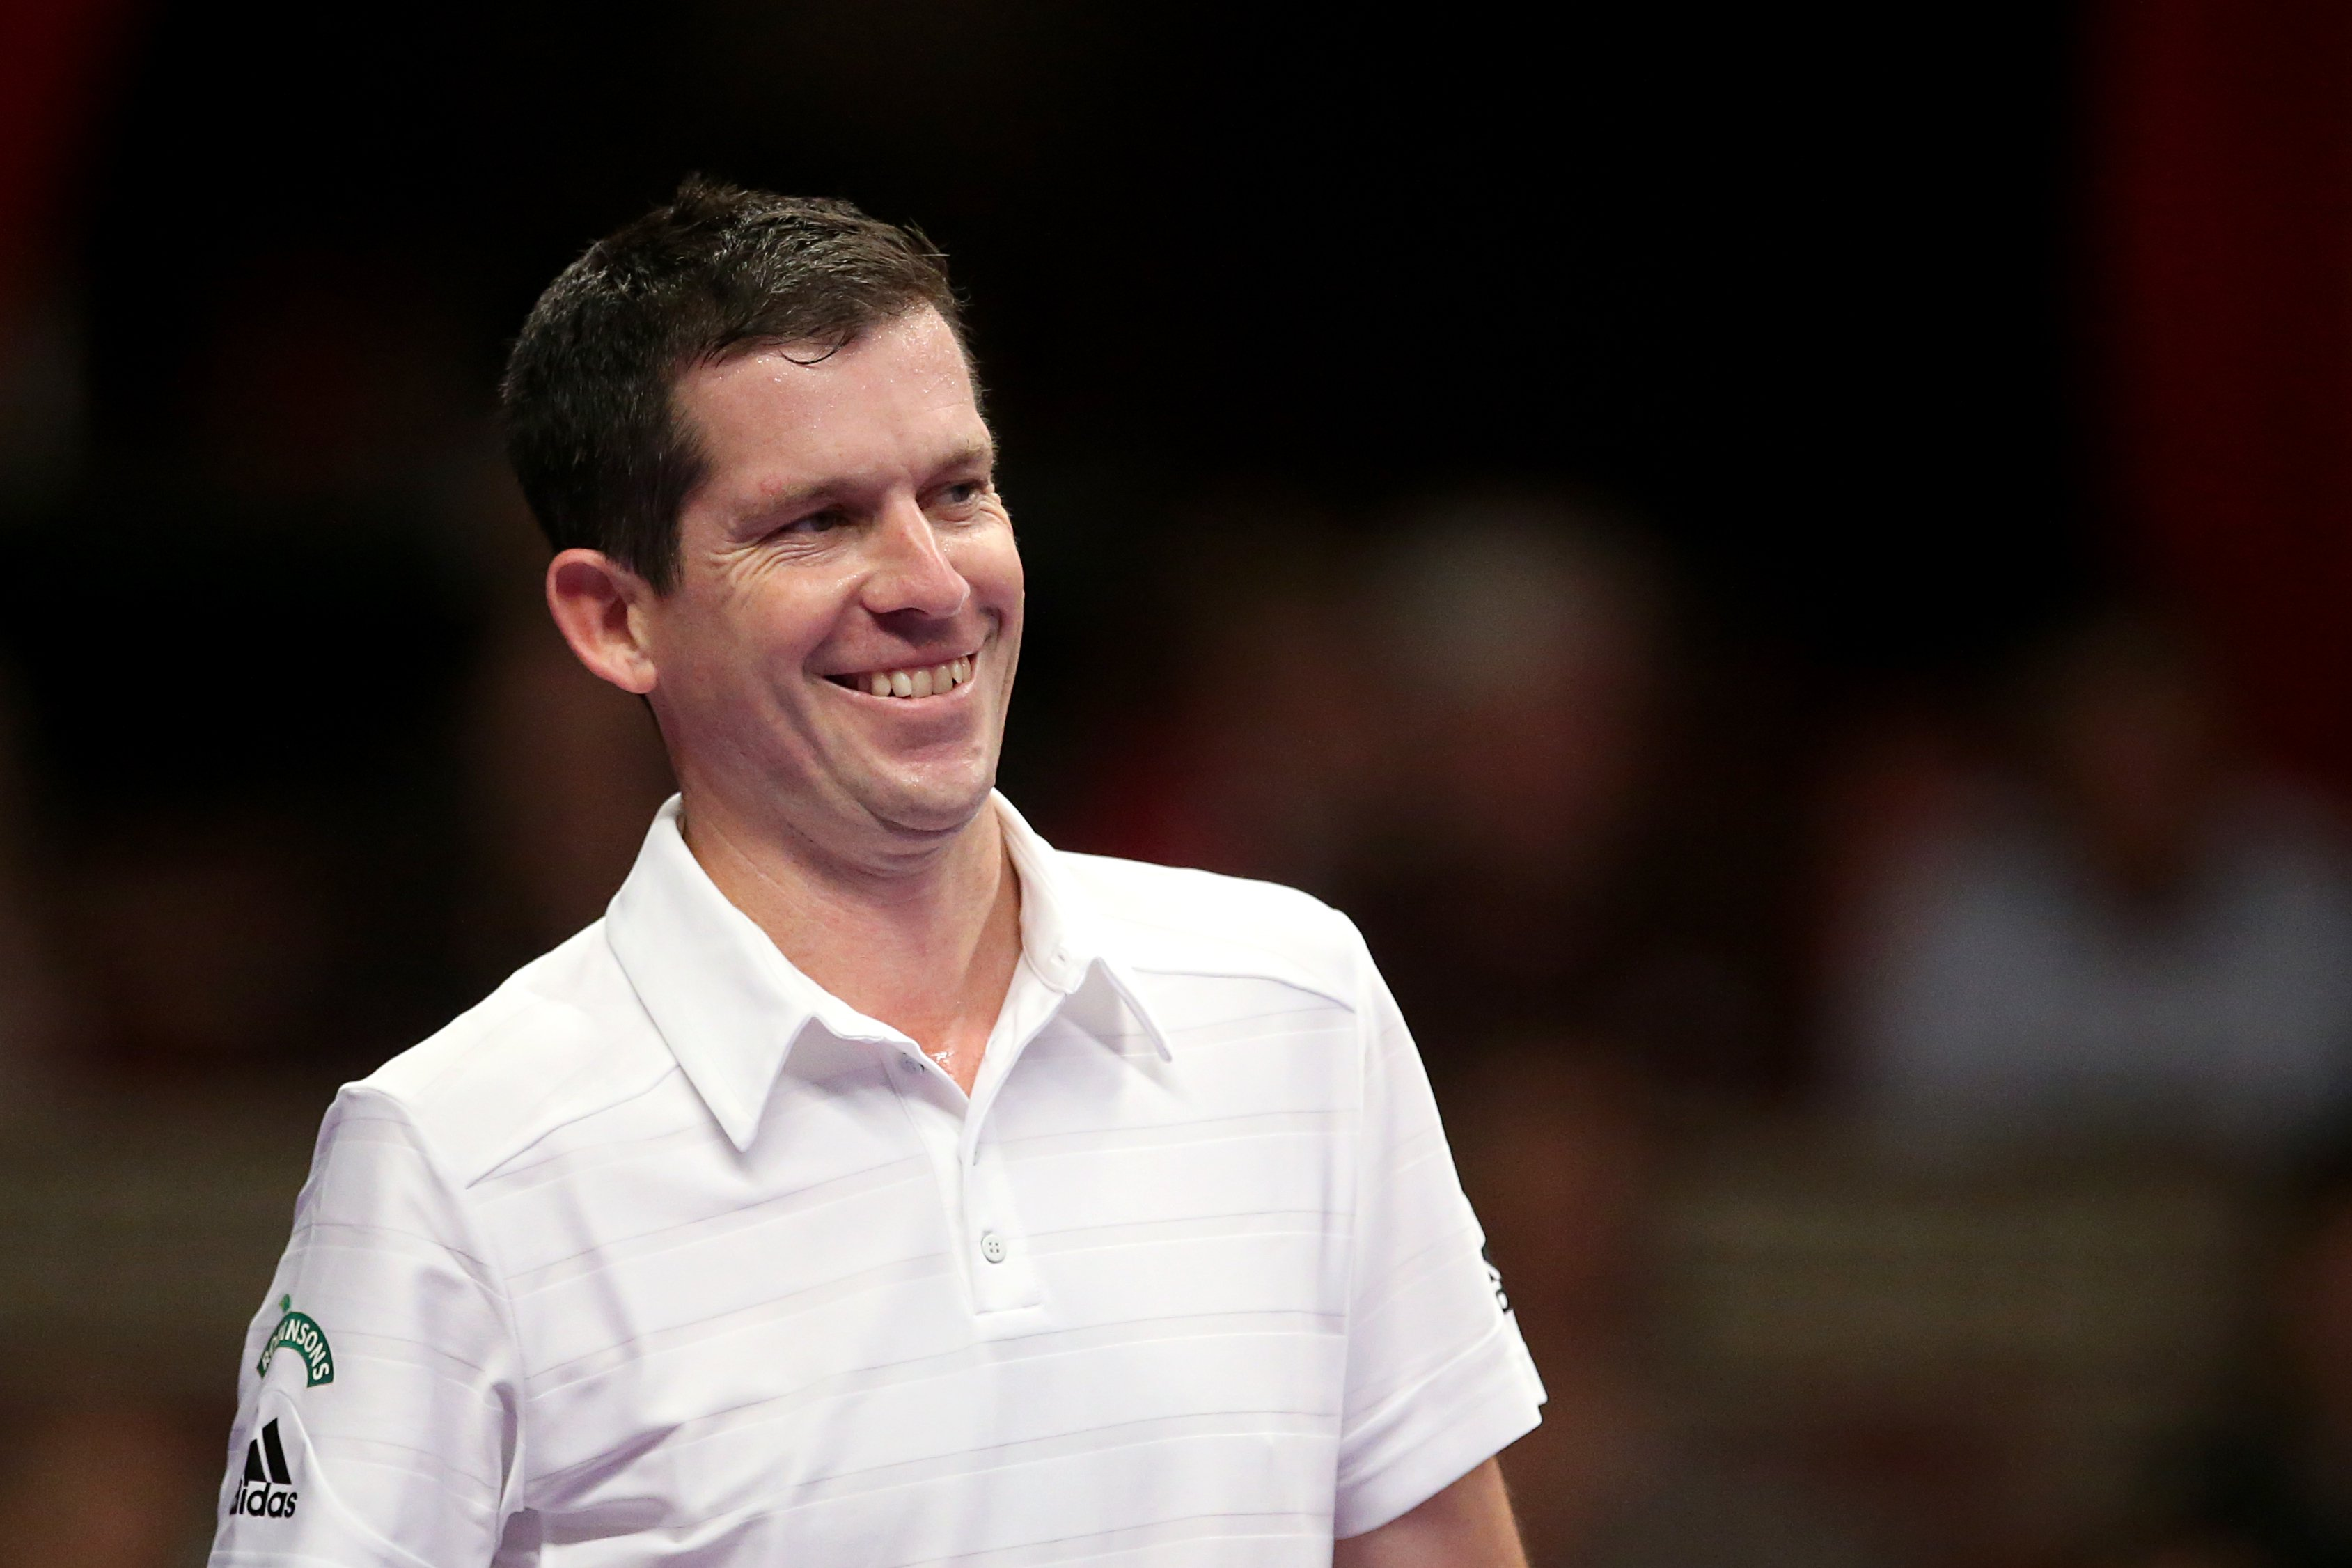 Tim Henman: Andy Murray heading in right direction and can win on ATP Tour again